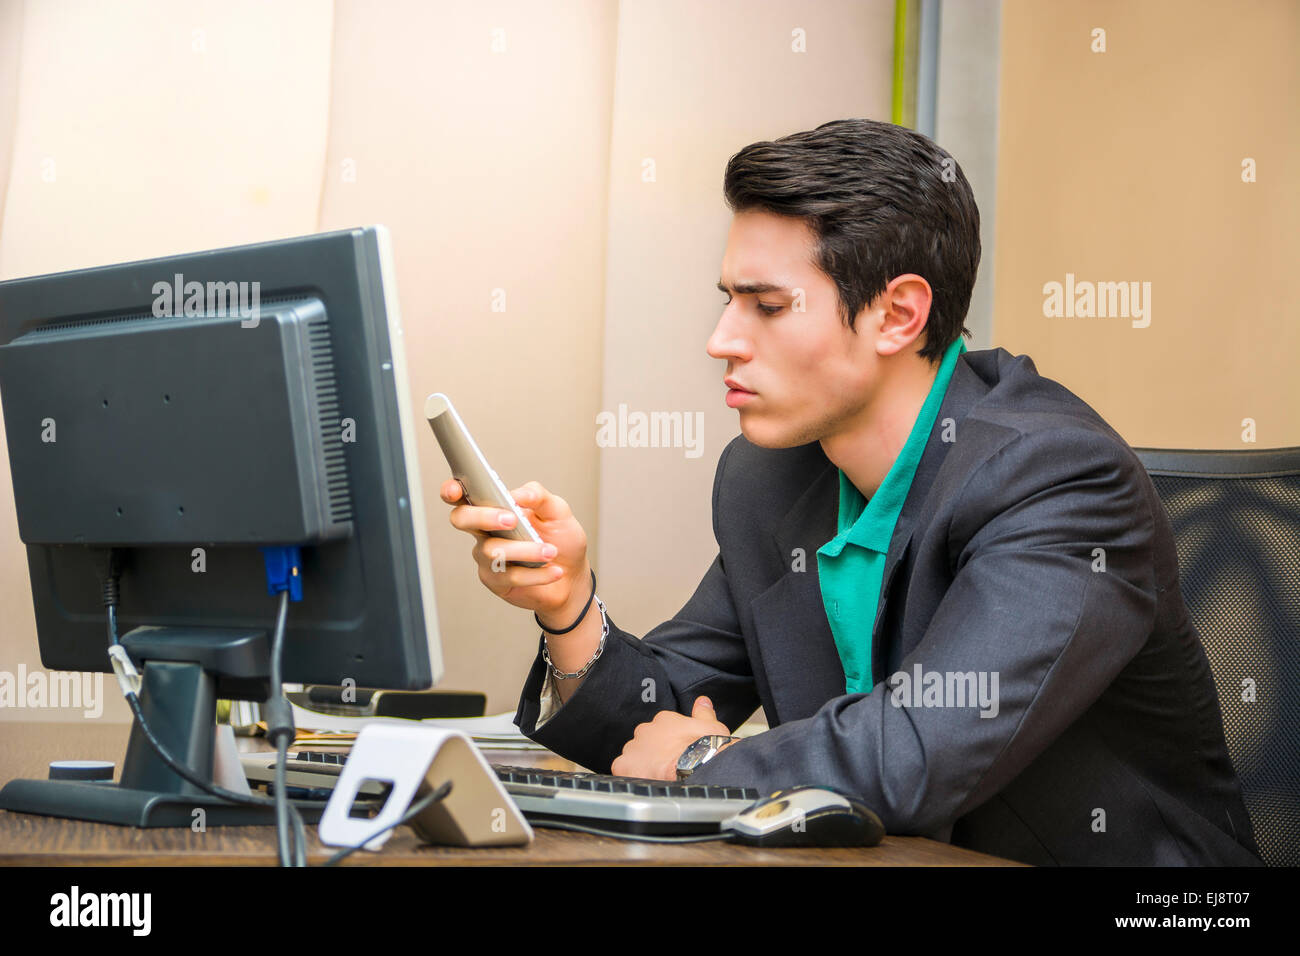 Handsome young businessman at desk in his office dialing on phone to make a call Stock Photo